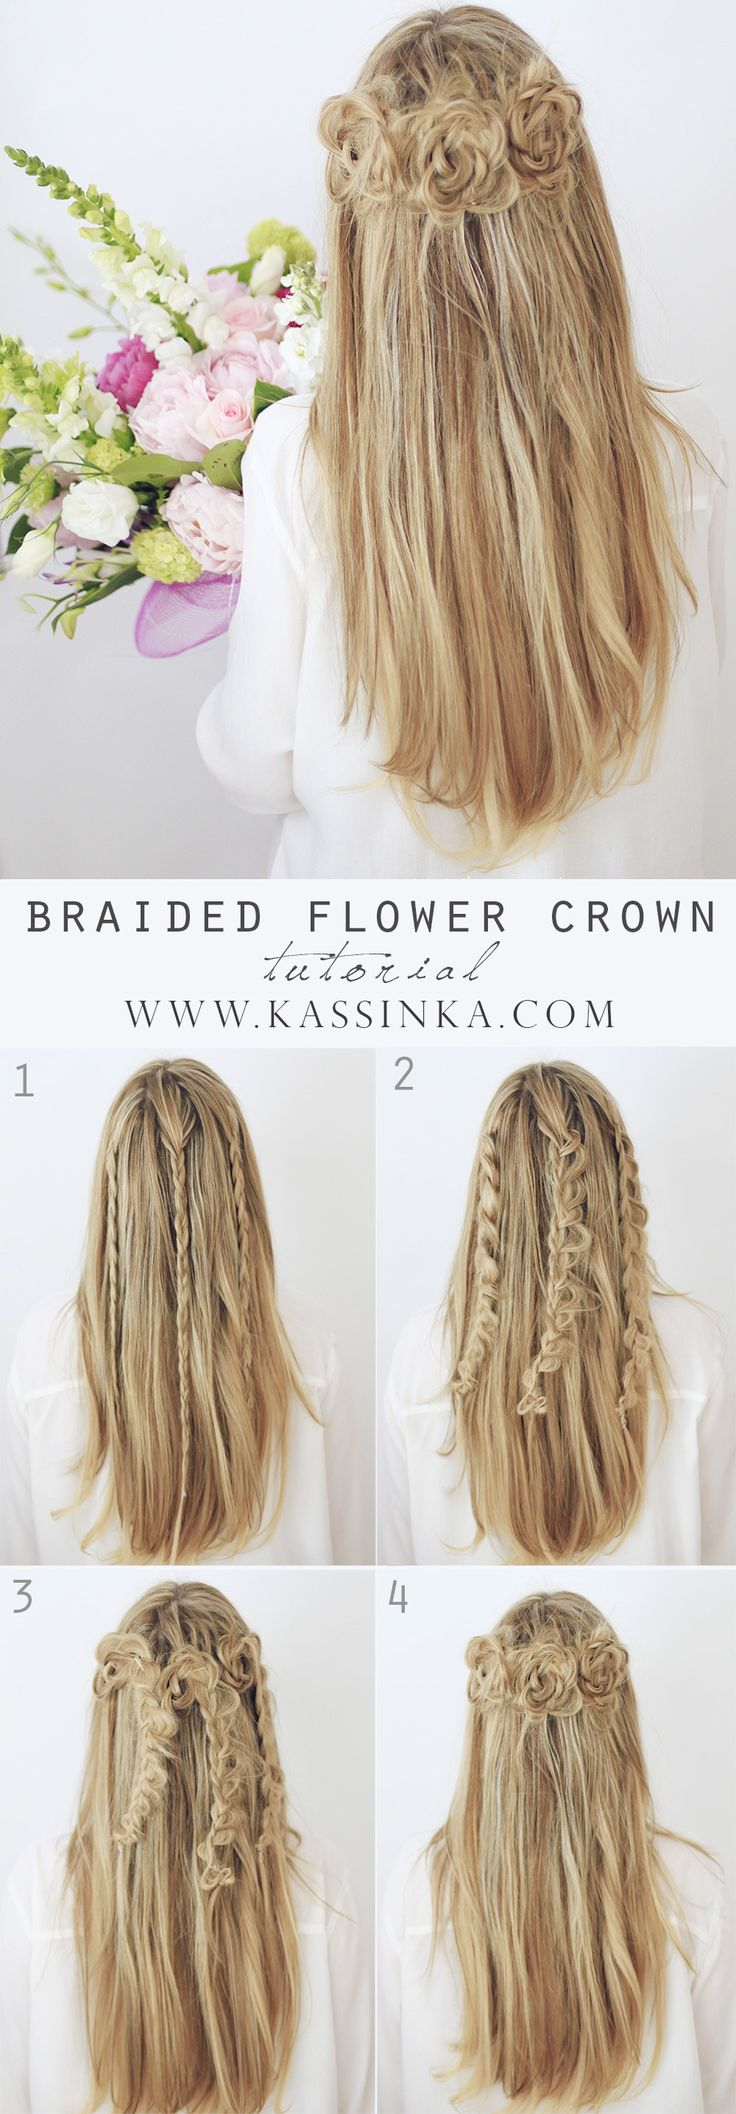 451 best Flower Crowns images on Pinterest | Flowers in hair, Bridal ...